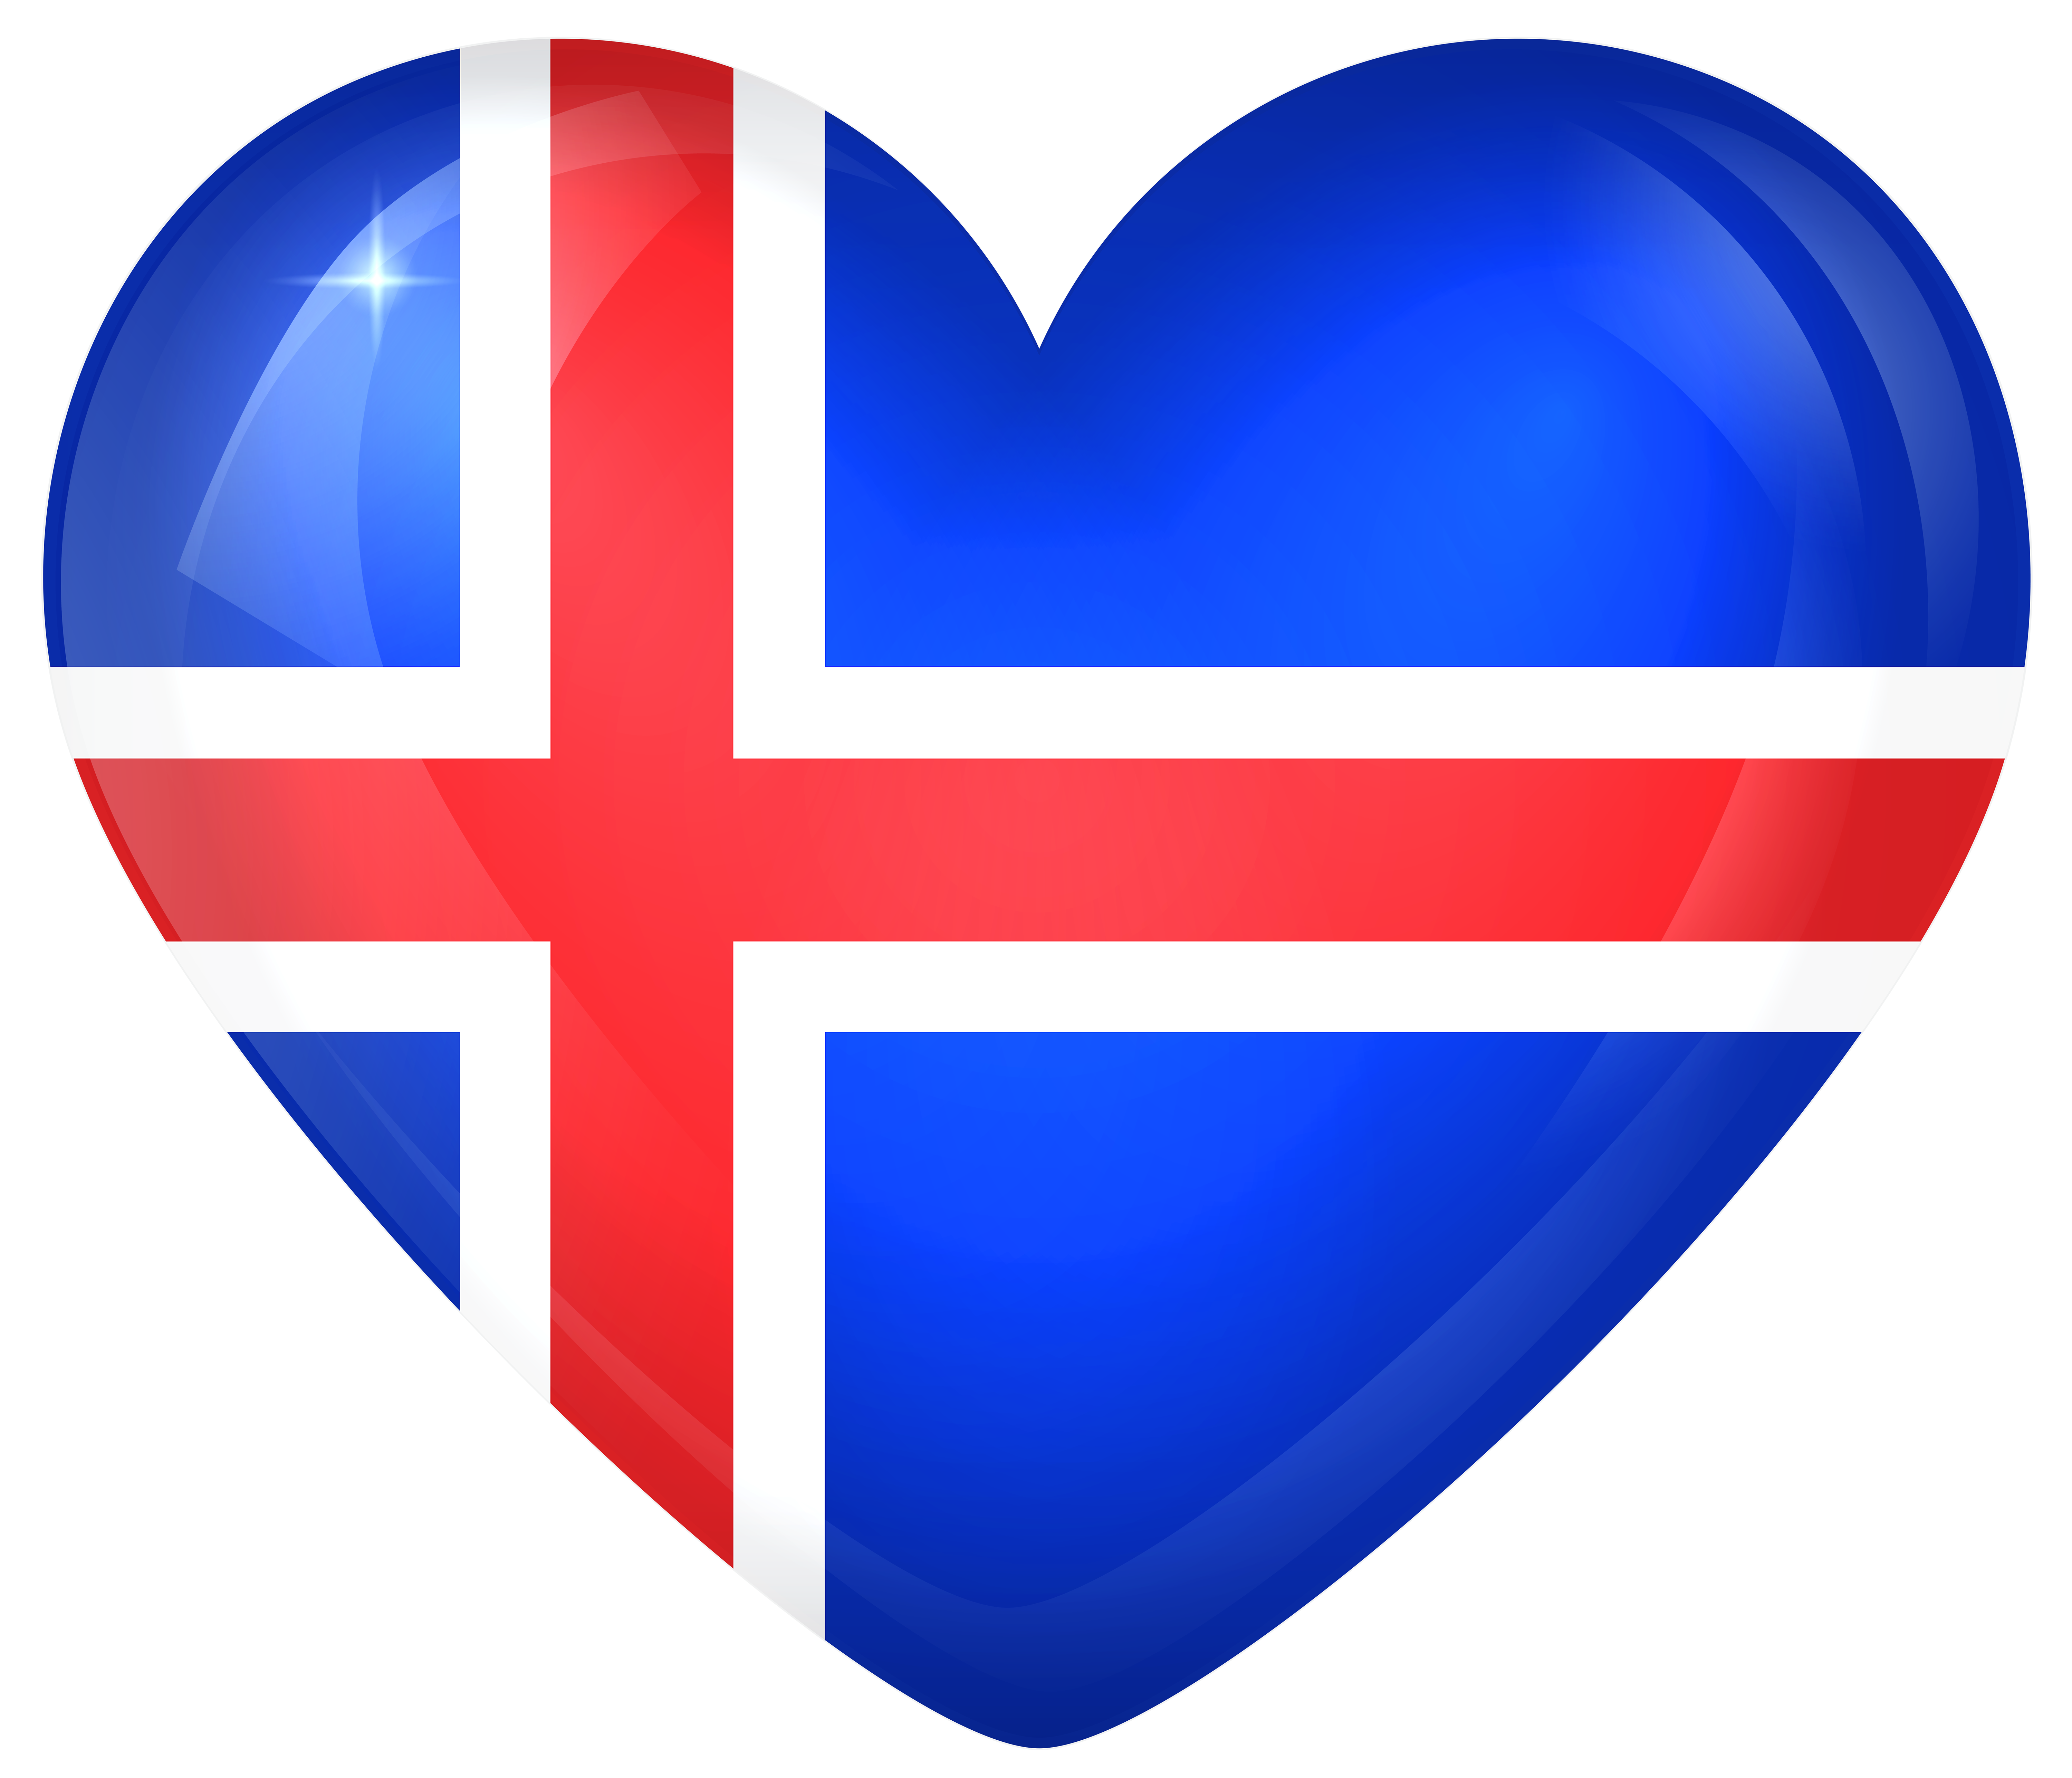 Icelandic clipart jpg transparent stock Iceland Large Heart Flag | Gallery Yopriceville - High ... jpg transparent stock